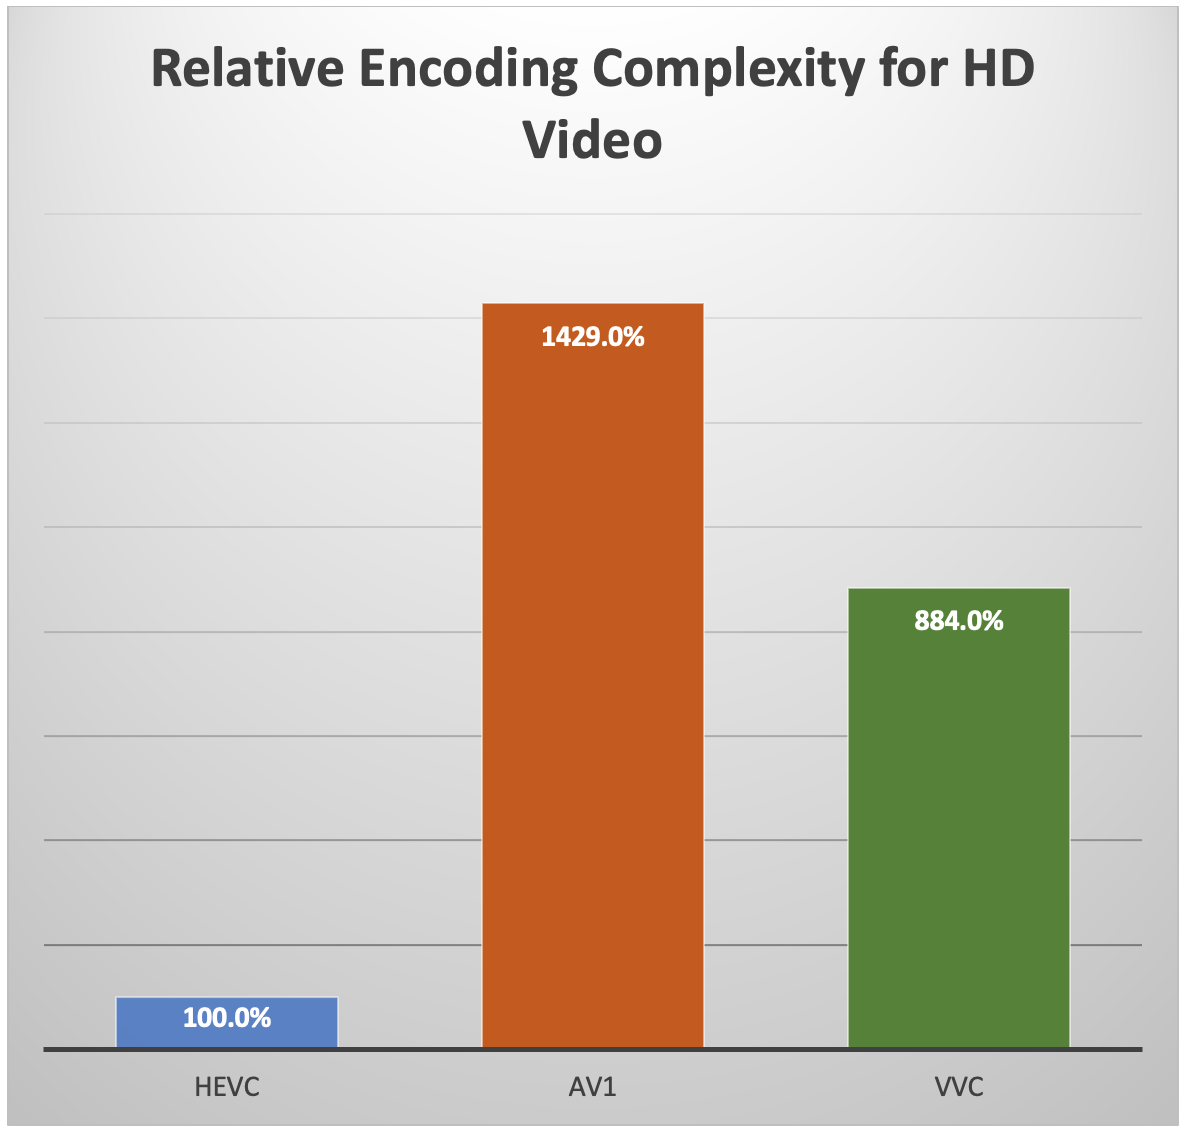 Relative encoding complexity for HD video